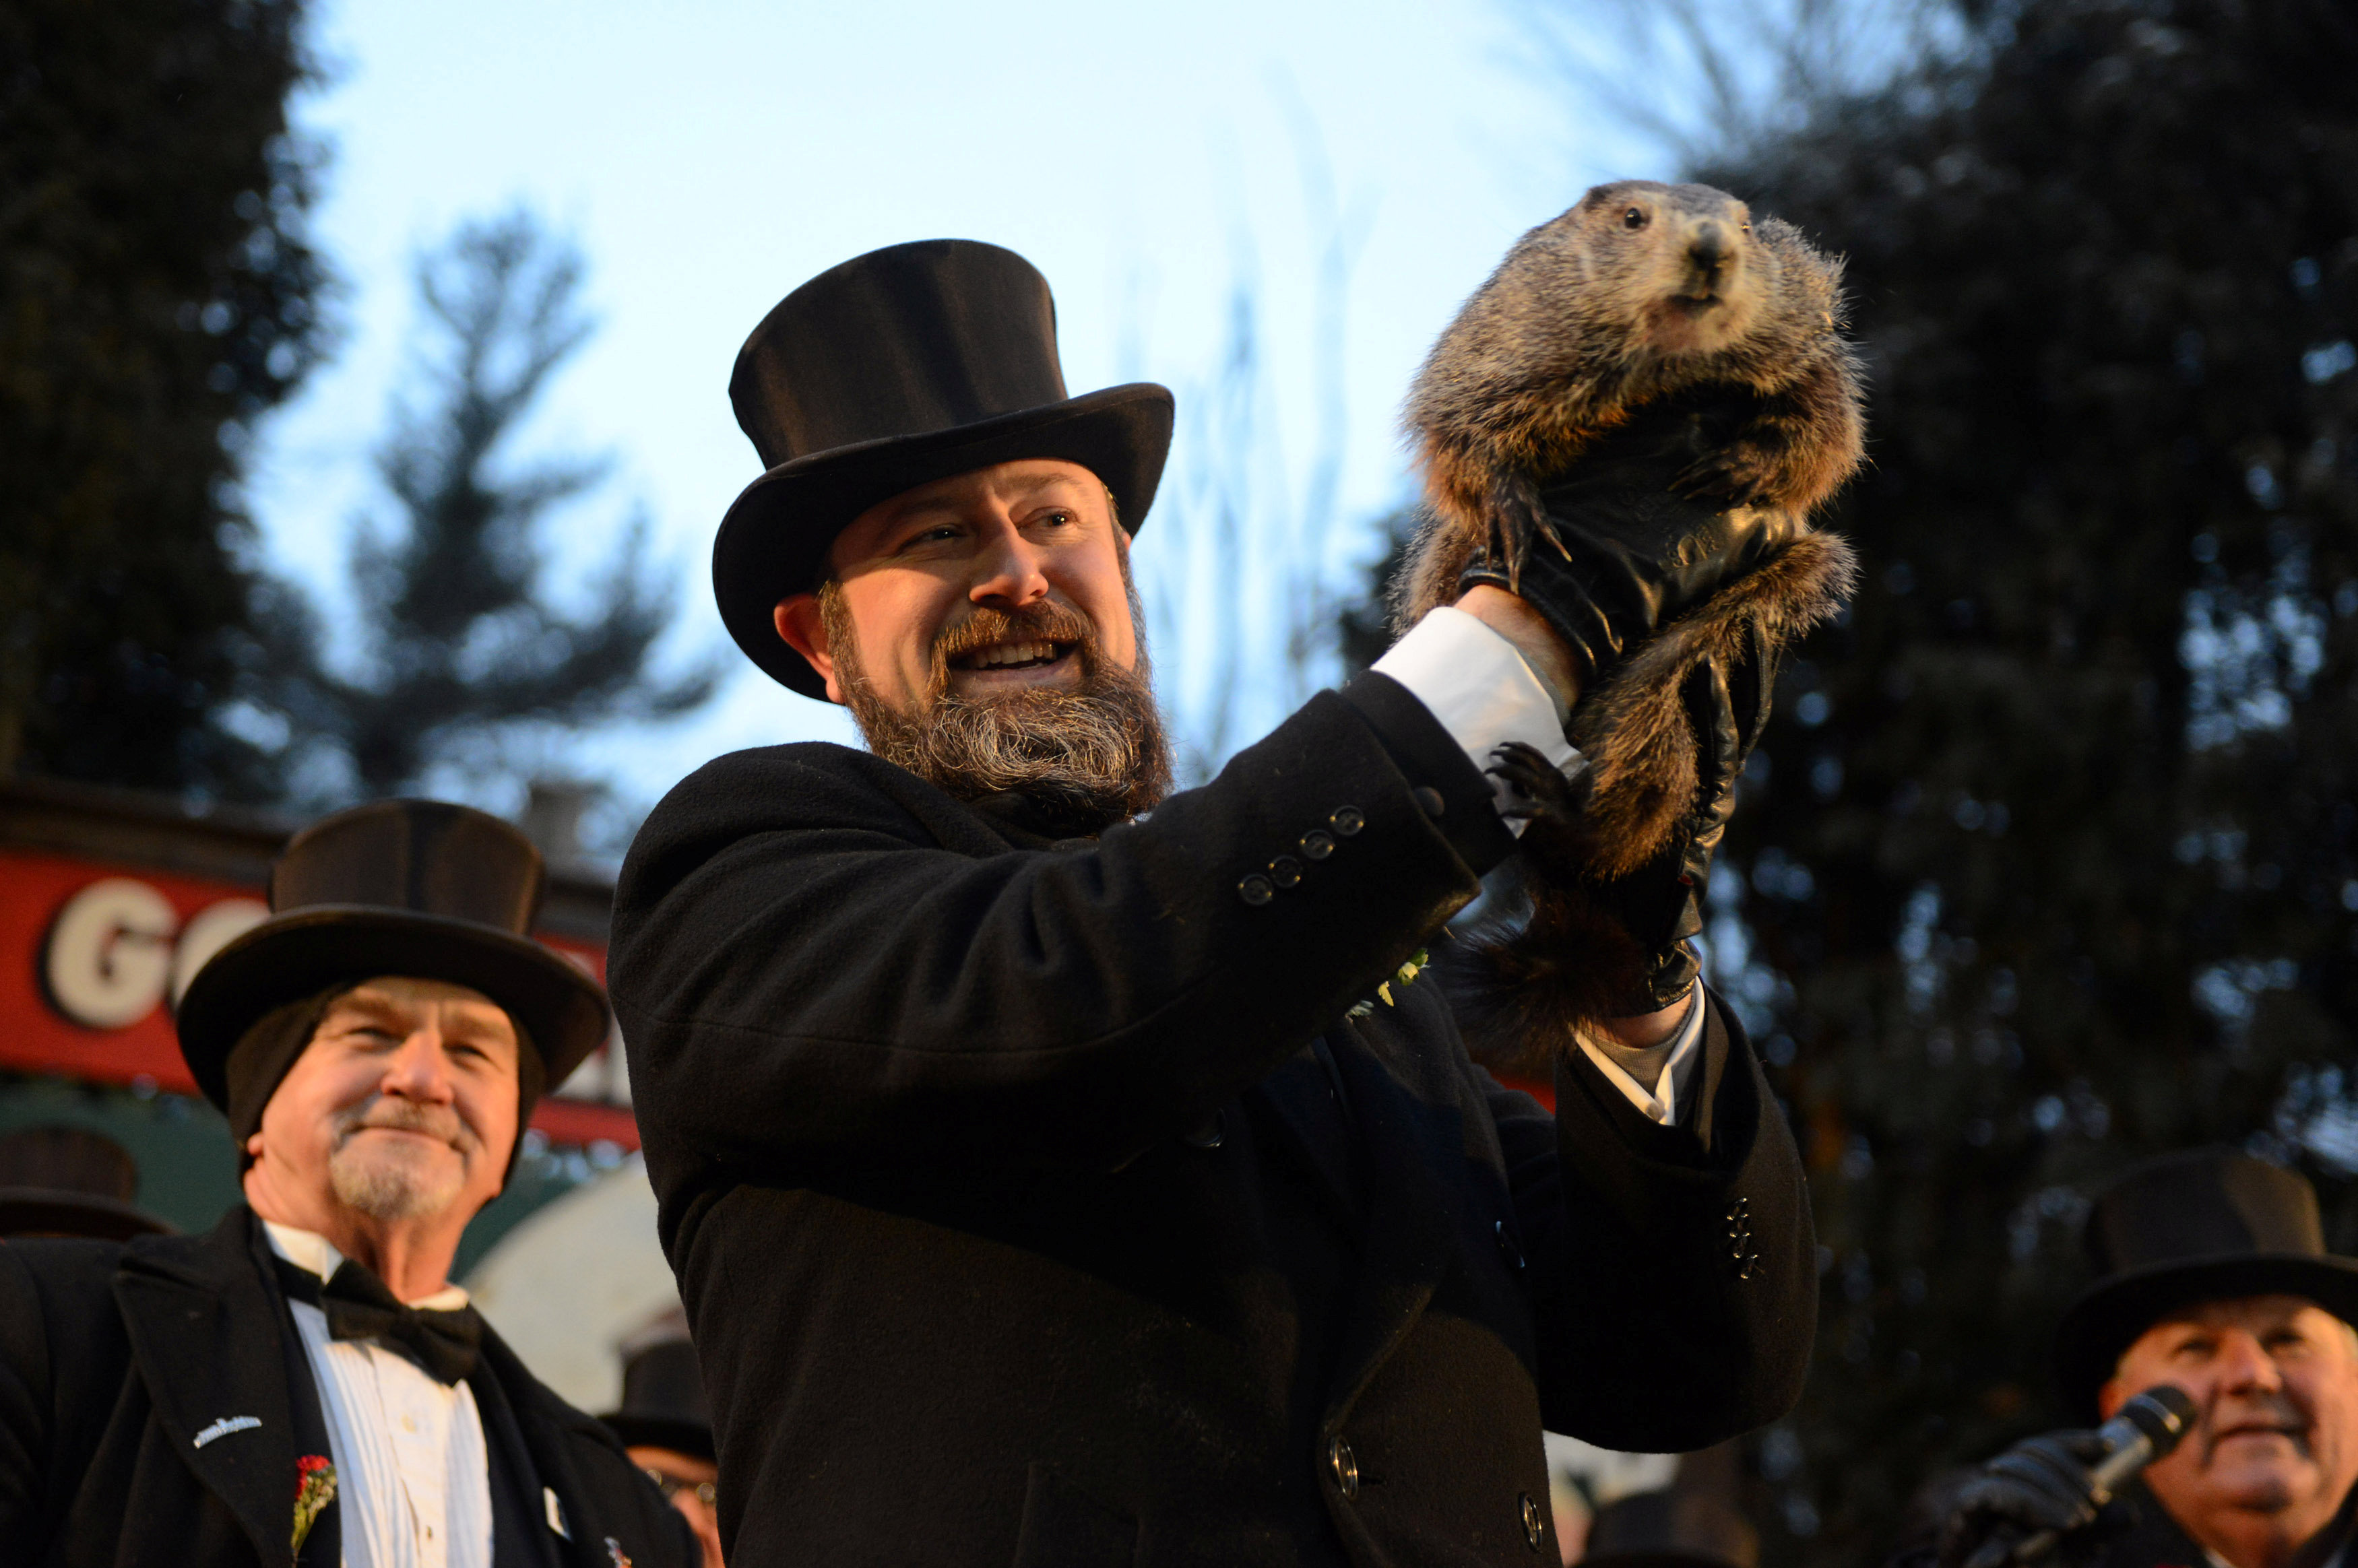 Groundhog co-handler A.J. Derume holds Punxsutawney Phil at Gobbler's Knob on the 132nd Groundhog Day in Punxsutawney, Pennsylvania, U.S. February 2, 2018. REUTERS/Alan Free